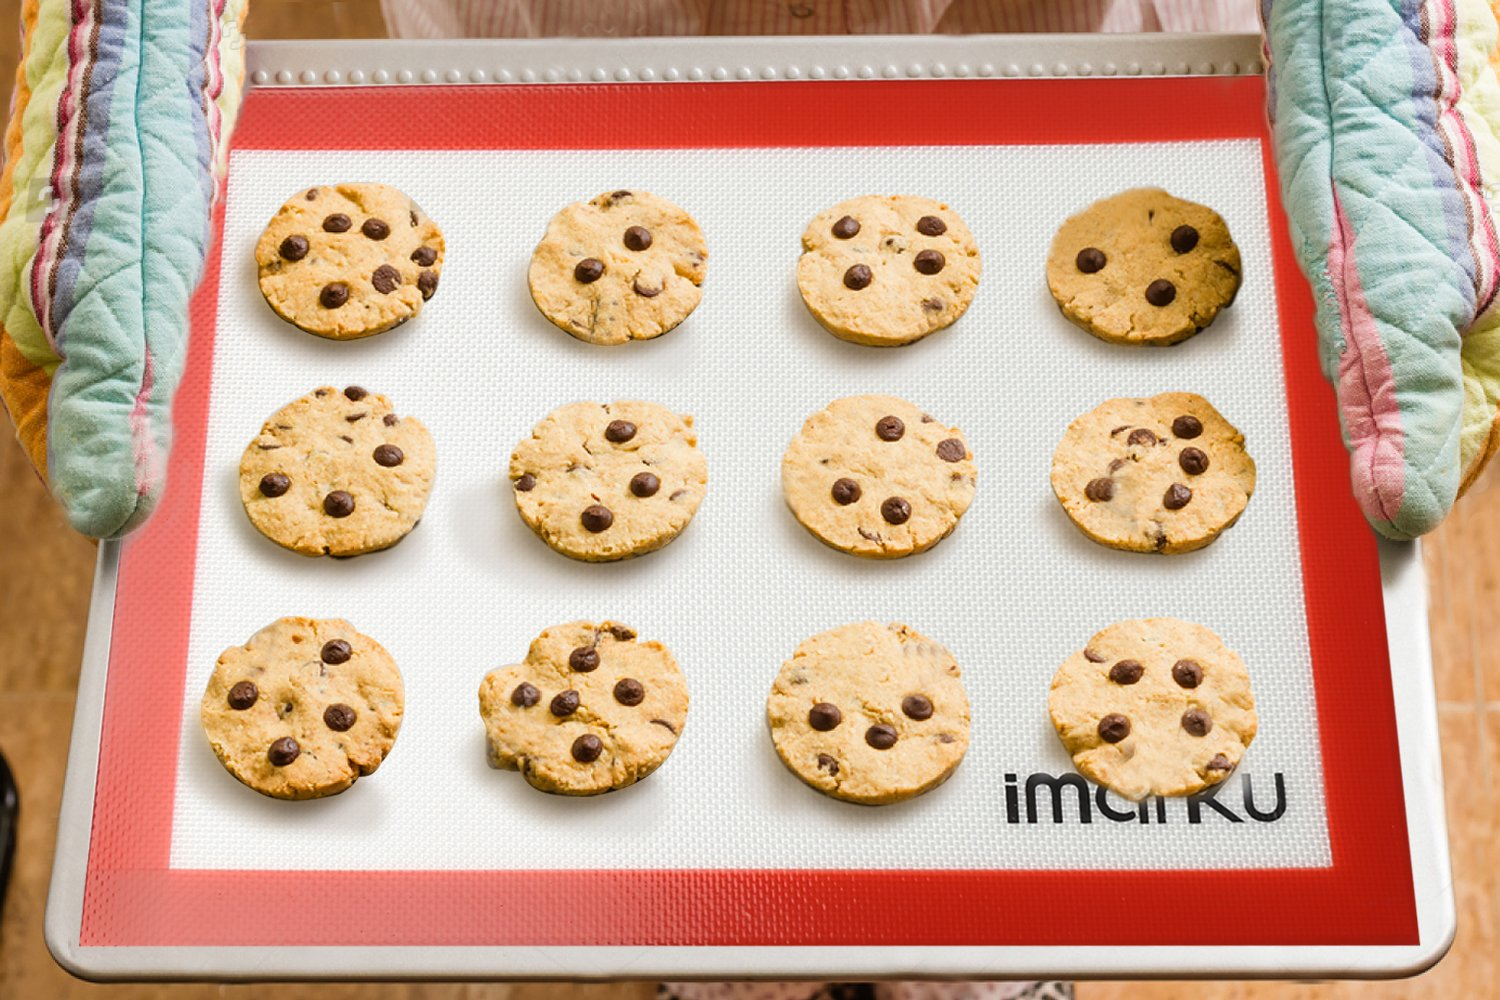 iMarku Silicone Baking Mat Set of 2 ,Non-Stick,Heat Resistant, Durable Silicon Liner for Bake Pans by iMarku (Image #4)